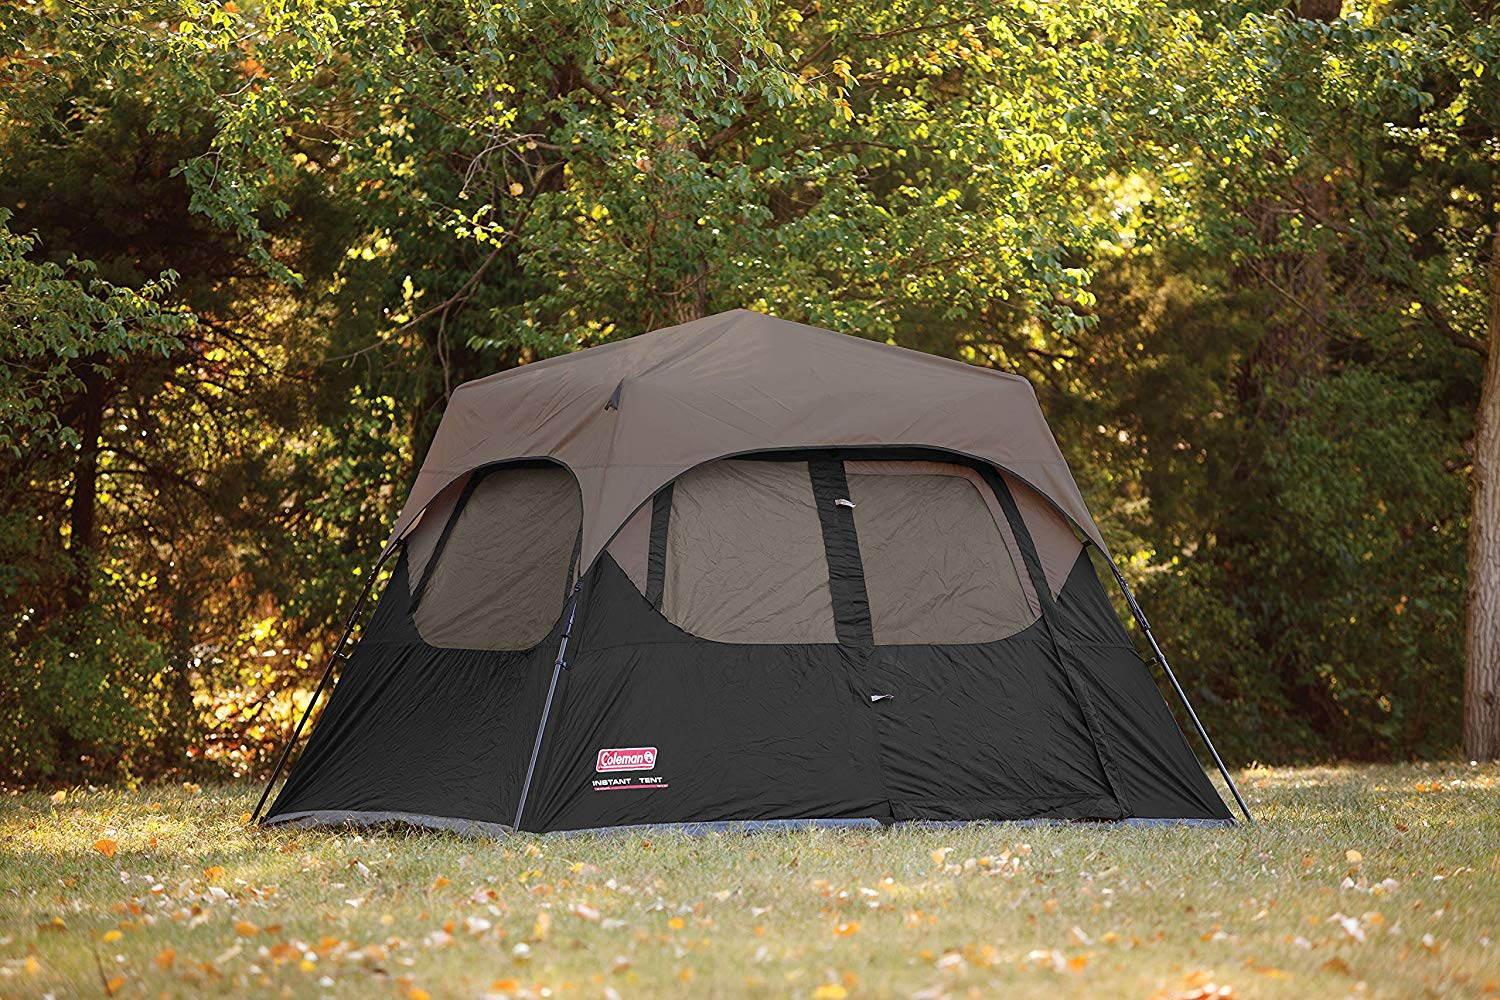 Coleman 6-Person Instant Tent Rainfly